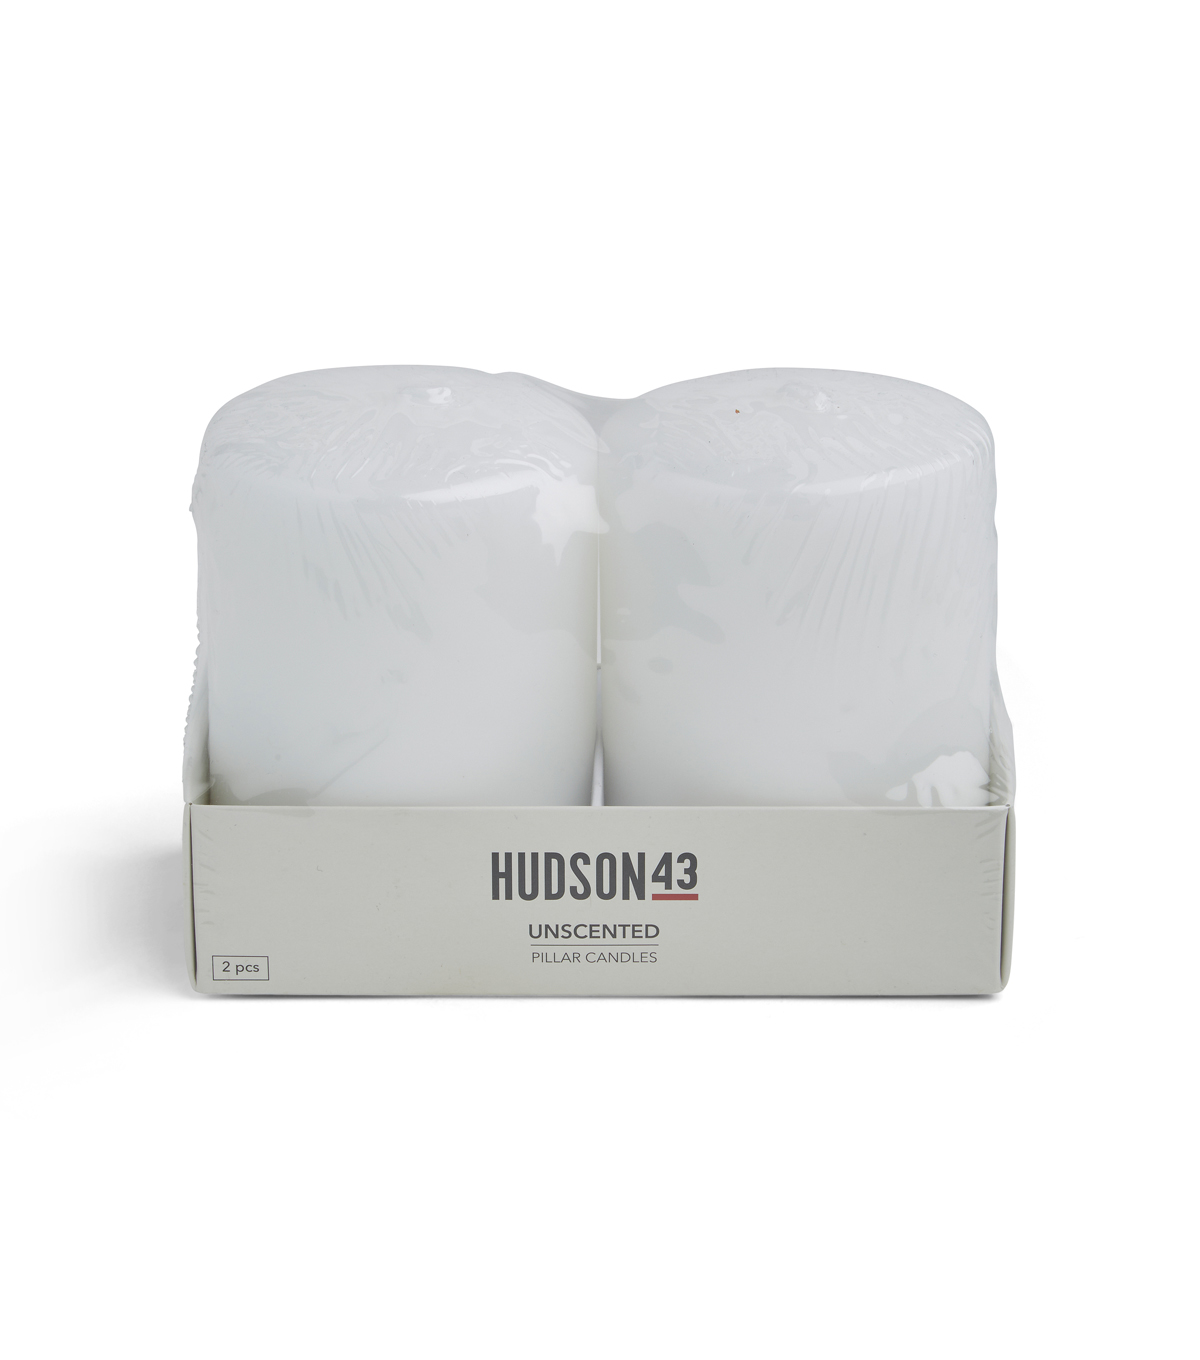 Hudson 43 Candle & Light Collection 2pk 3\u0022x4\u0022 Unscented Pillar Candles-White